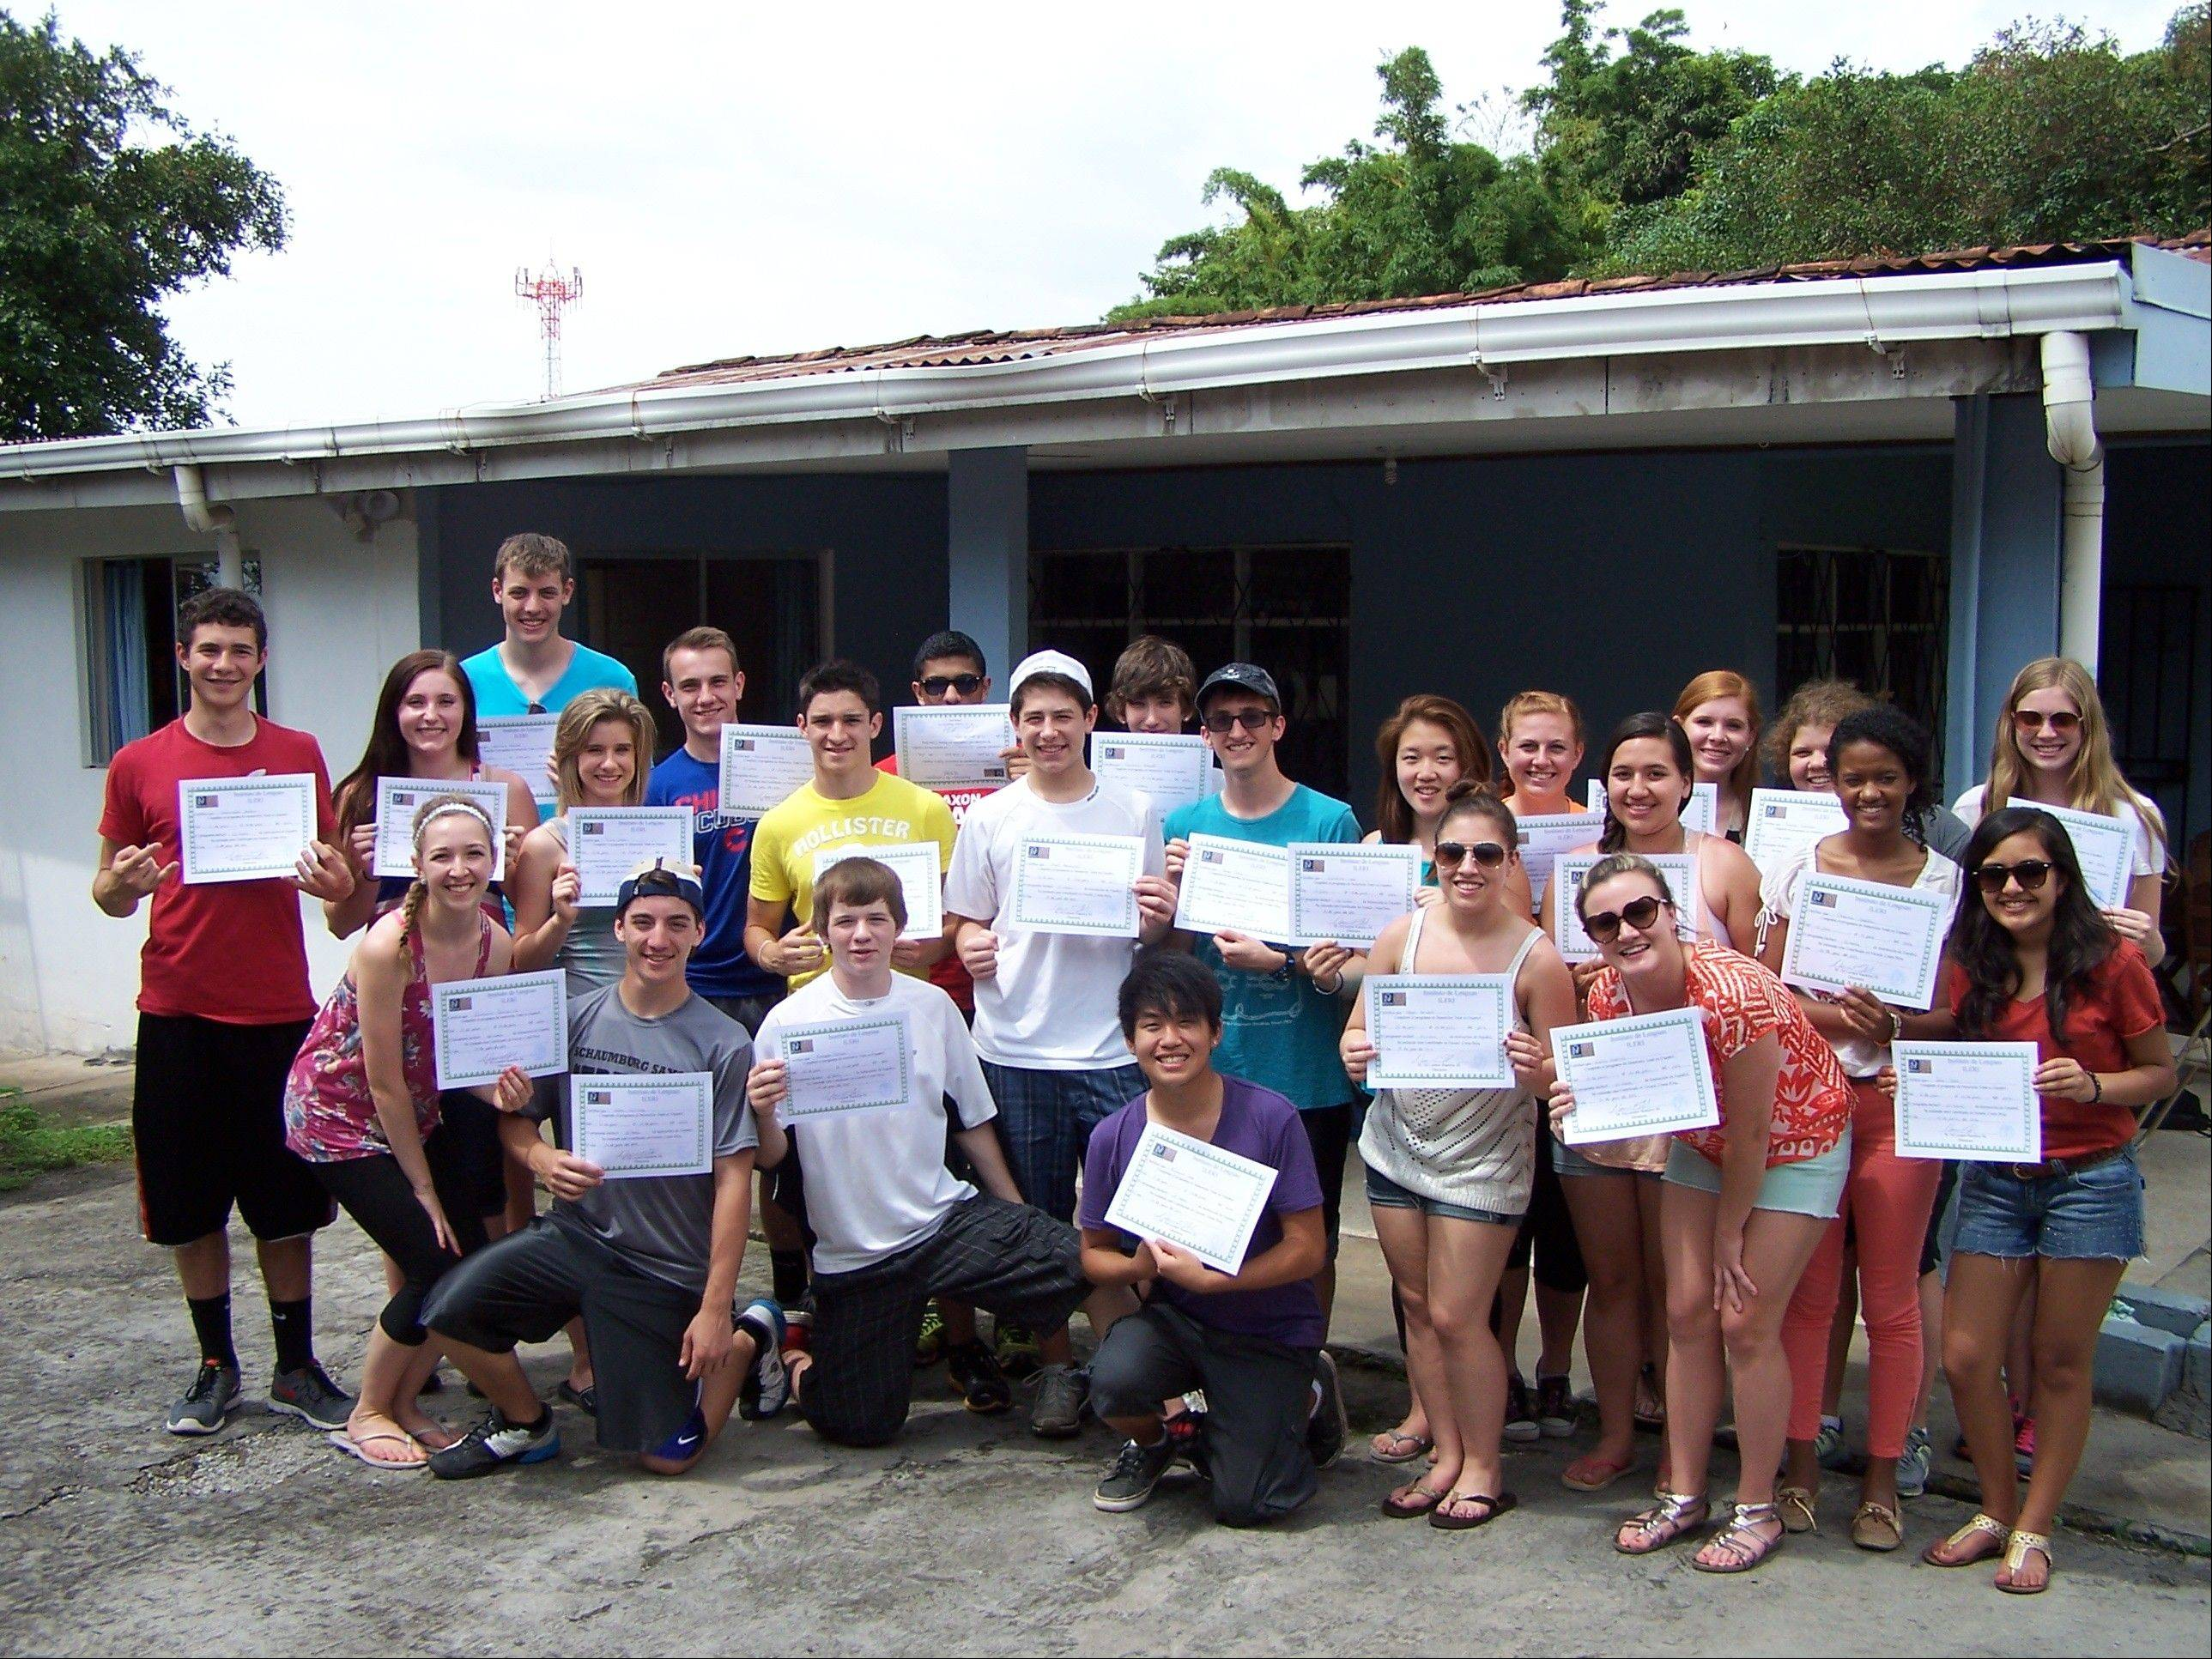 Students from Schaumburg High School traveled to Escazu, Costa Rica, in June. They display the diplomas they received after completing five days of Spanish immersion language classes while living with local families.